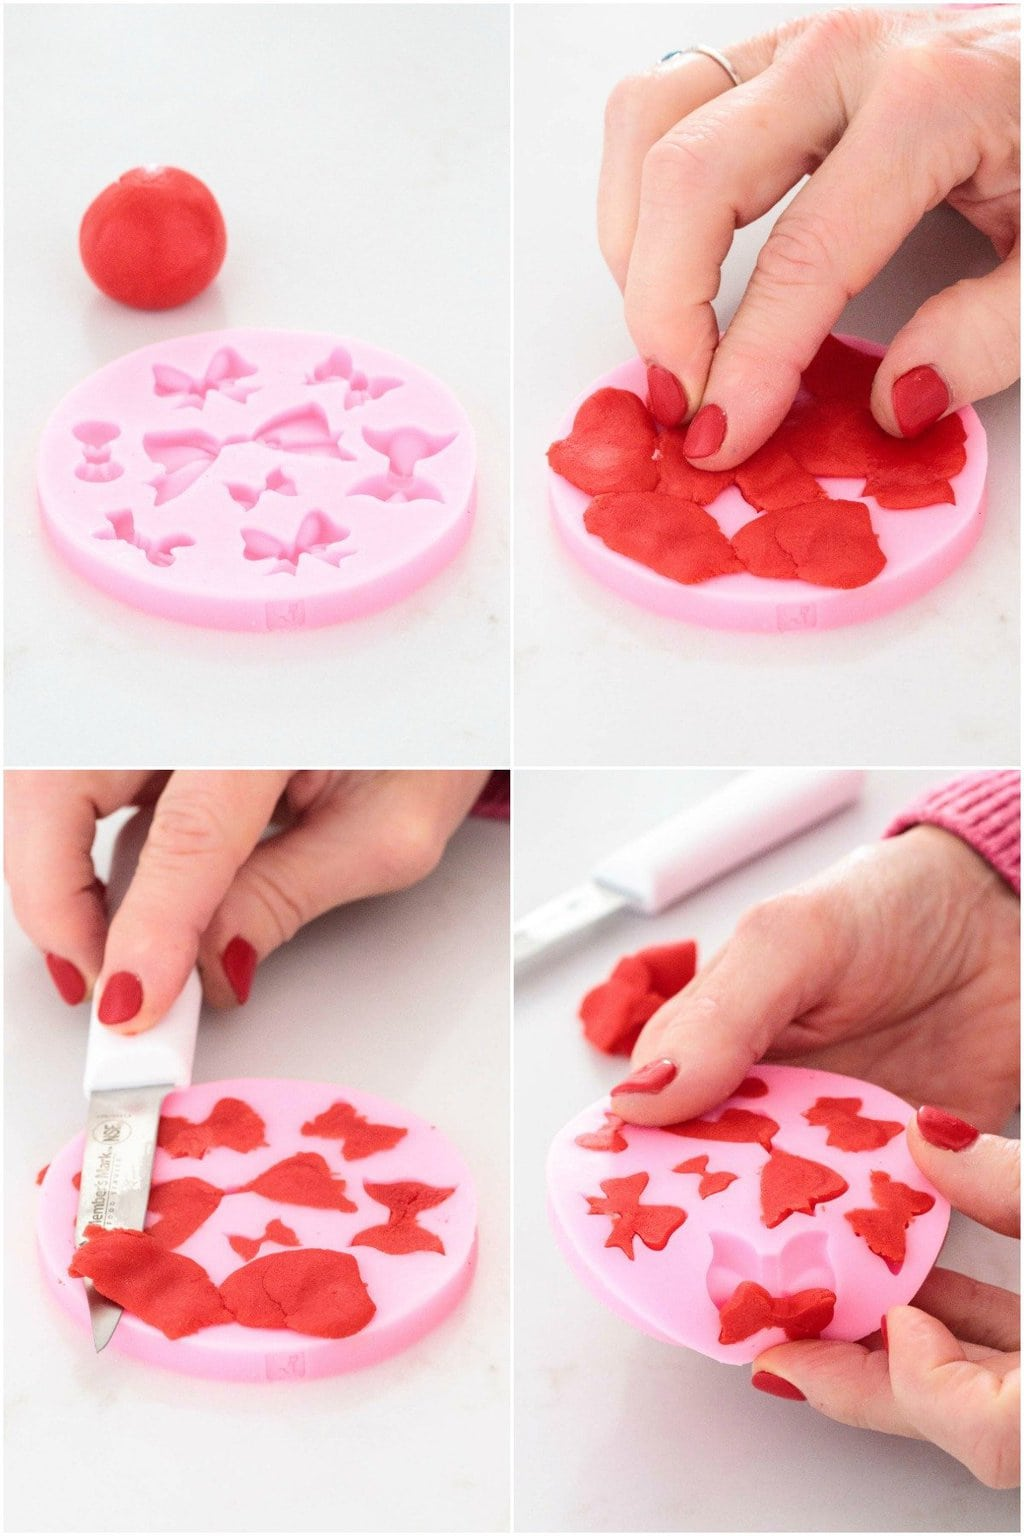 How-to photo collage for making fondant decorative bows to put on Christmas Wreath Shortbread Cookies.